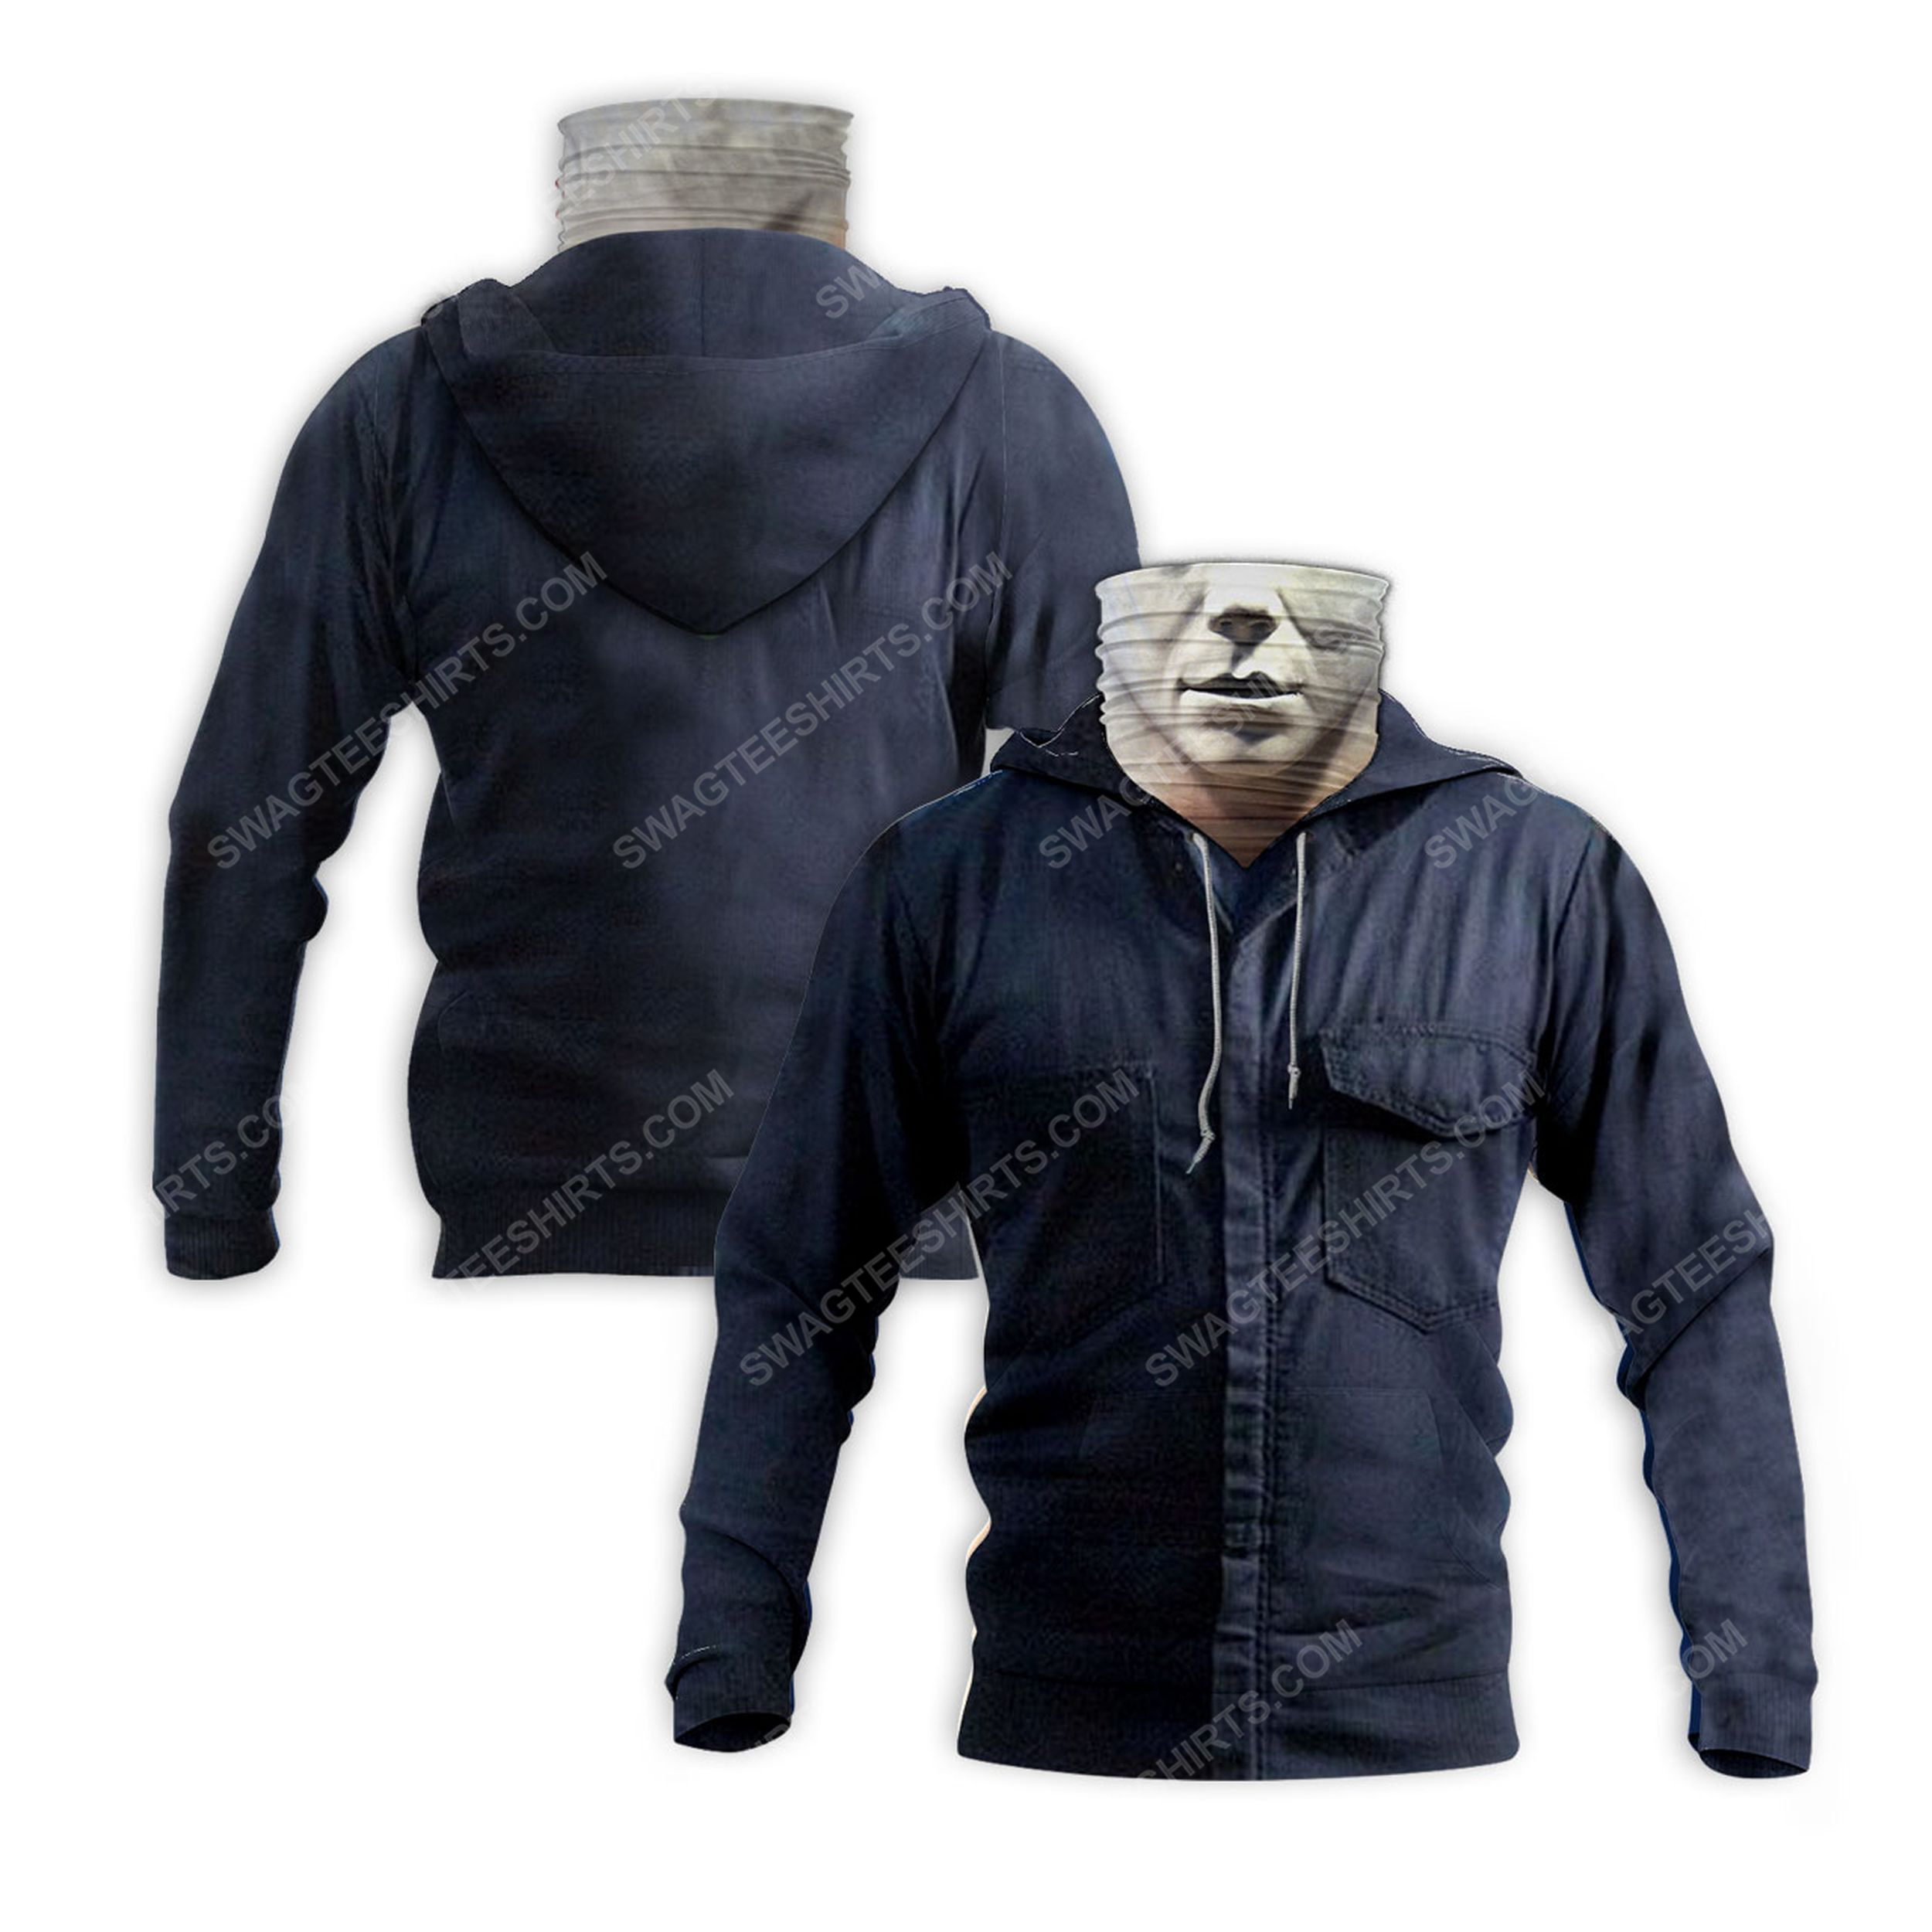 Horror movie michael myers for halloween full print mask hoodie 2(1) - Copy